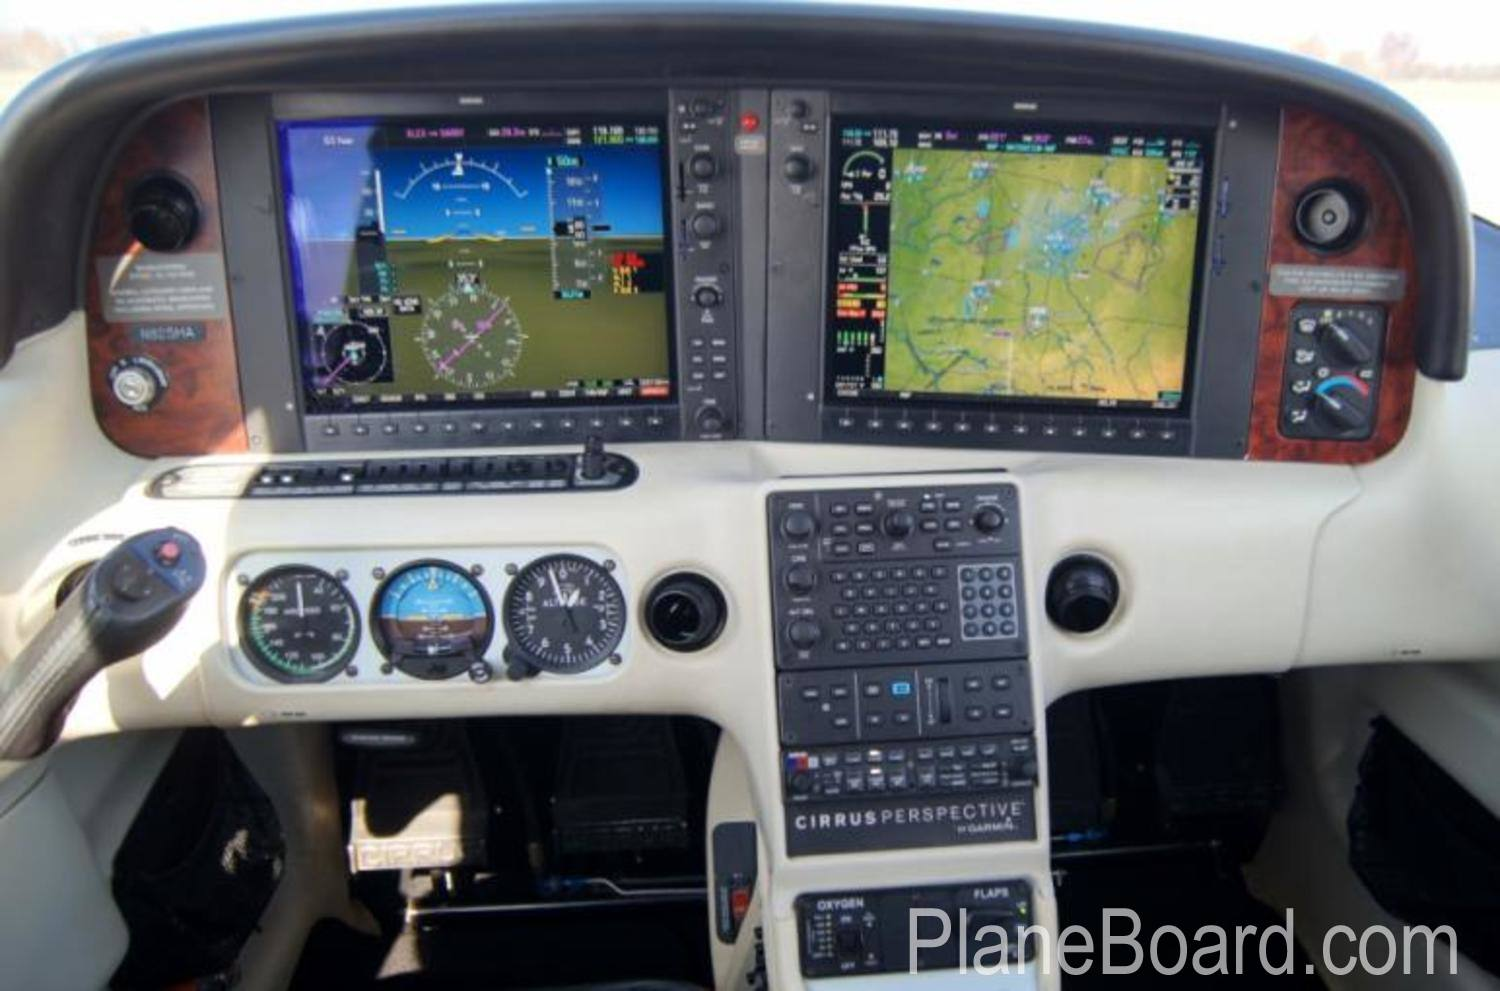 2009 Cirrus Sr22 G3 Turbo Gts For Sale N825ha Planeboard